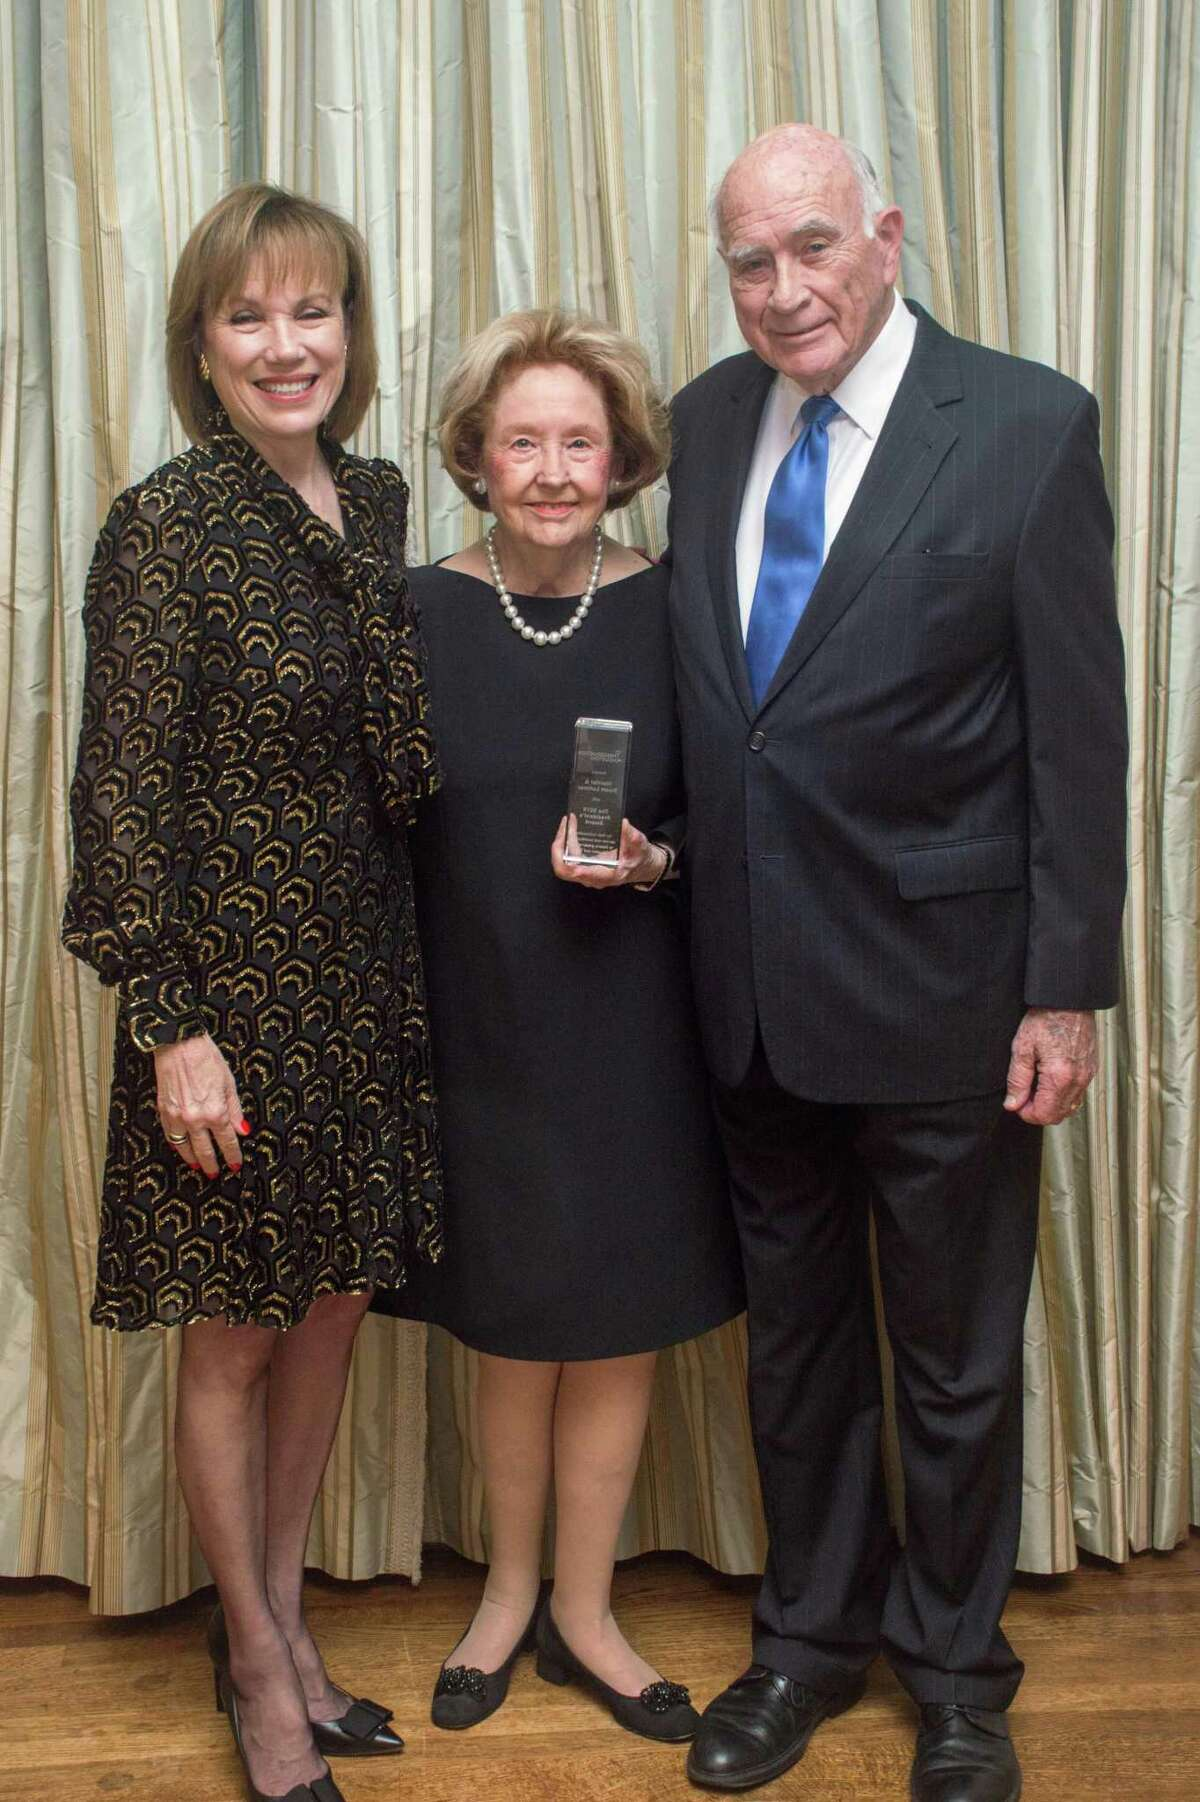 From left, Preservation Houston President Deborah Keyser and Harriet and Truett Latimer receivedPreservation Houston's 2019 President's Award for their outstanding service and contributions to historic preservation in Houston and Texas.